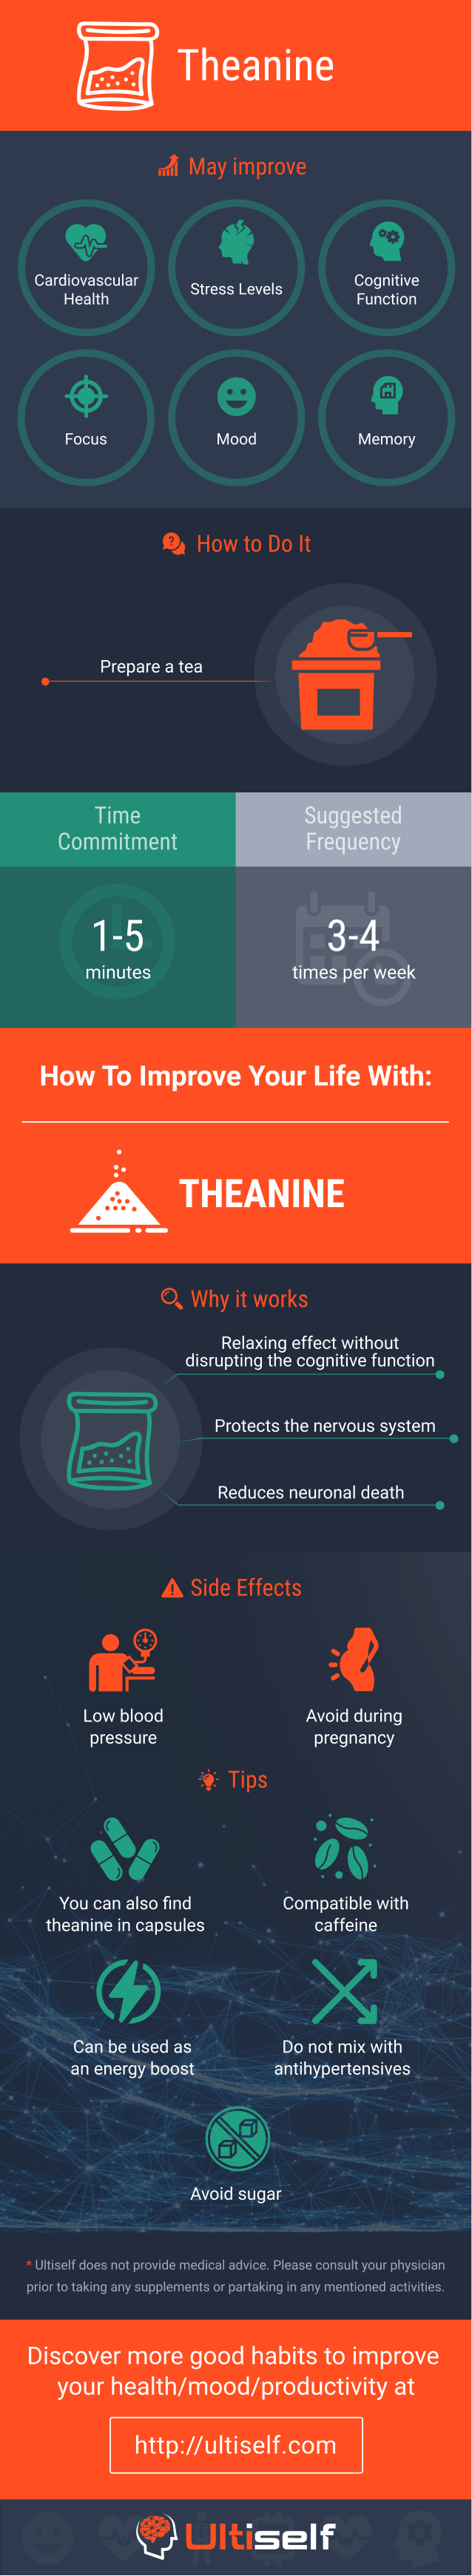 Theanine infographic